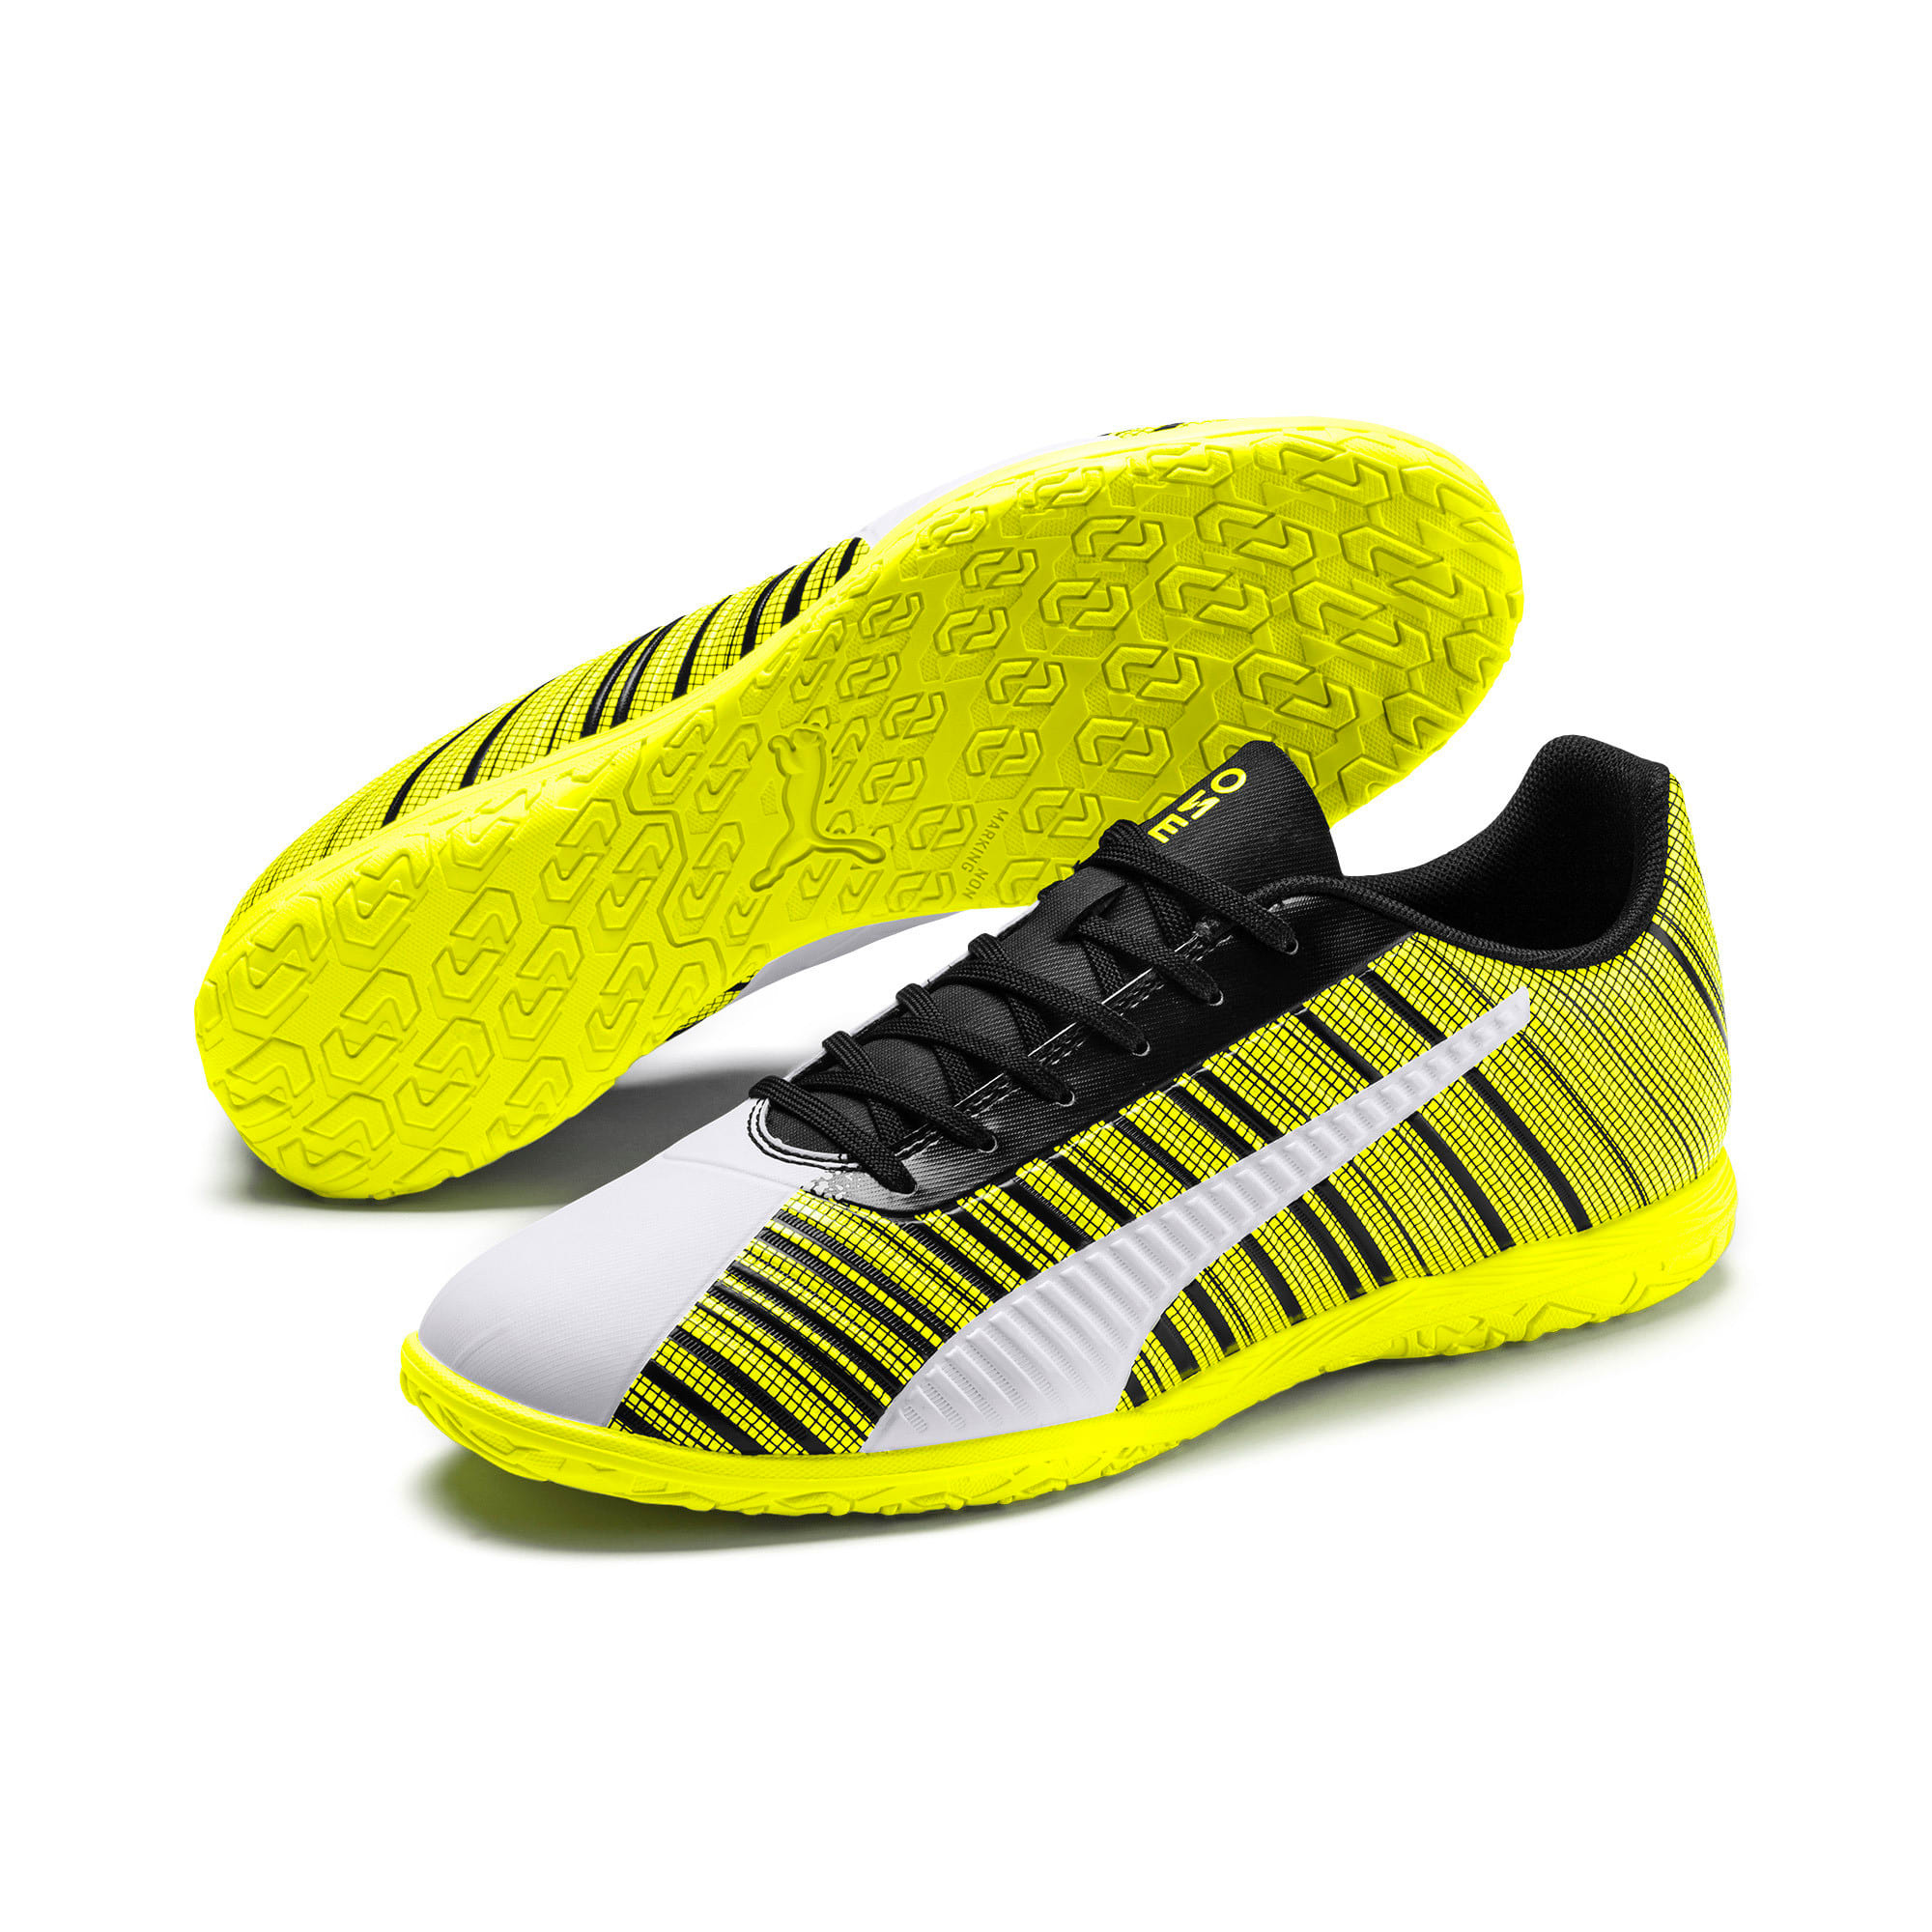 PUMA ONE 5.4 IT Men's Football Boots, White-Black-Yellow Alert, large